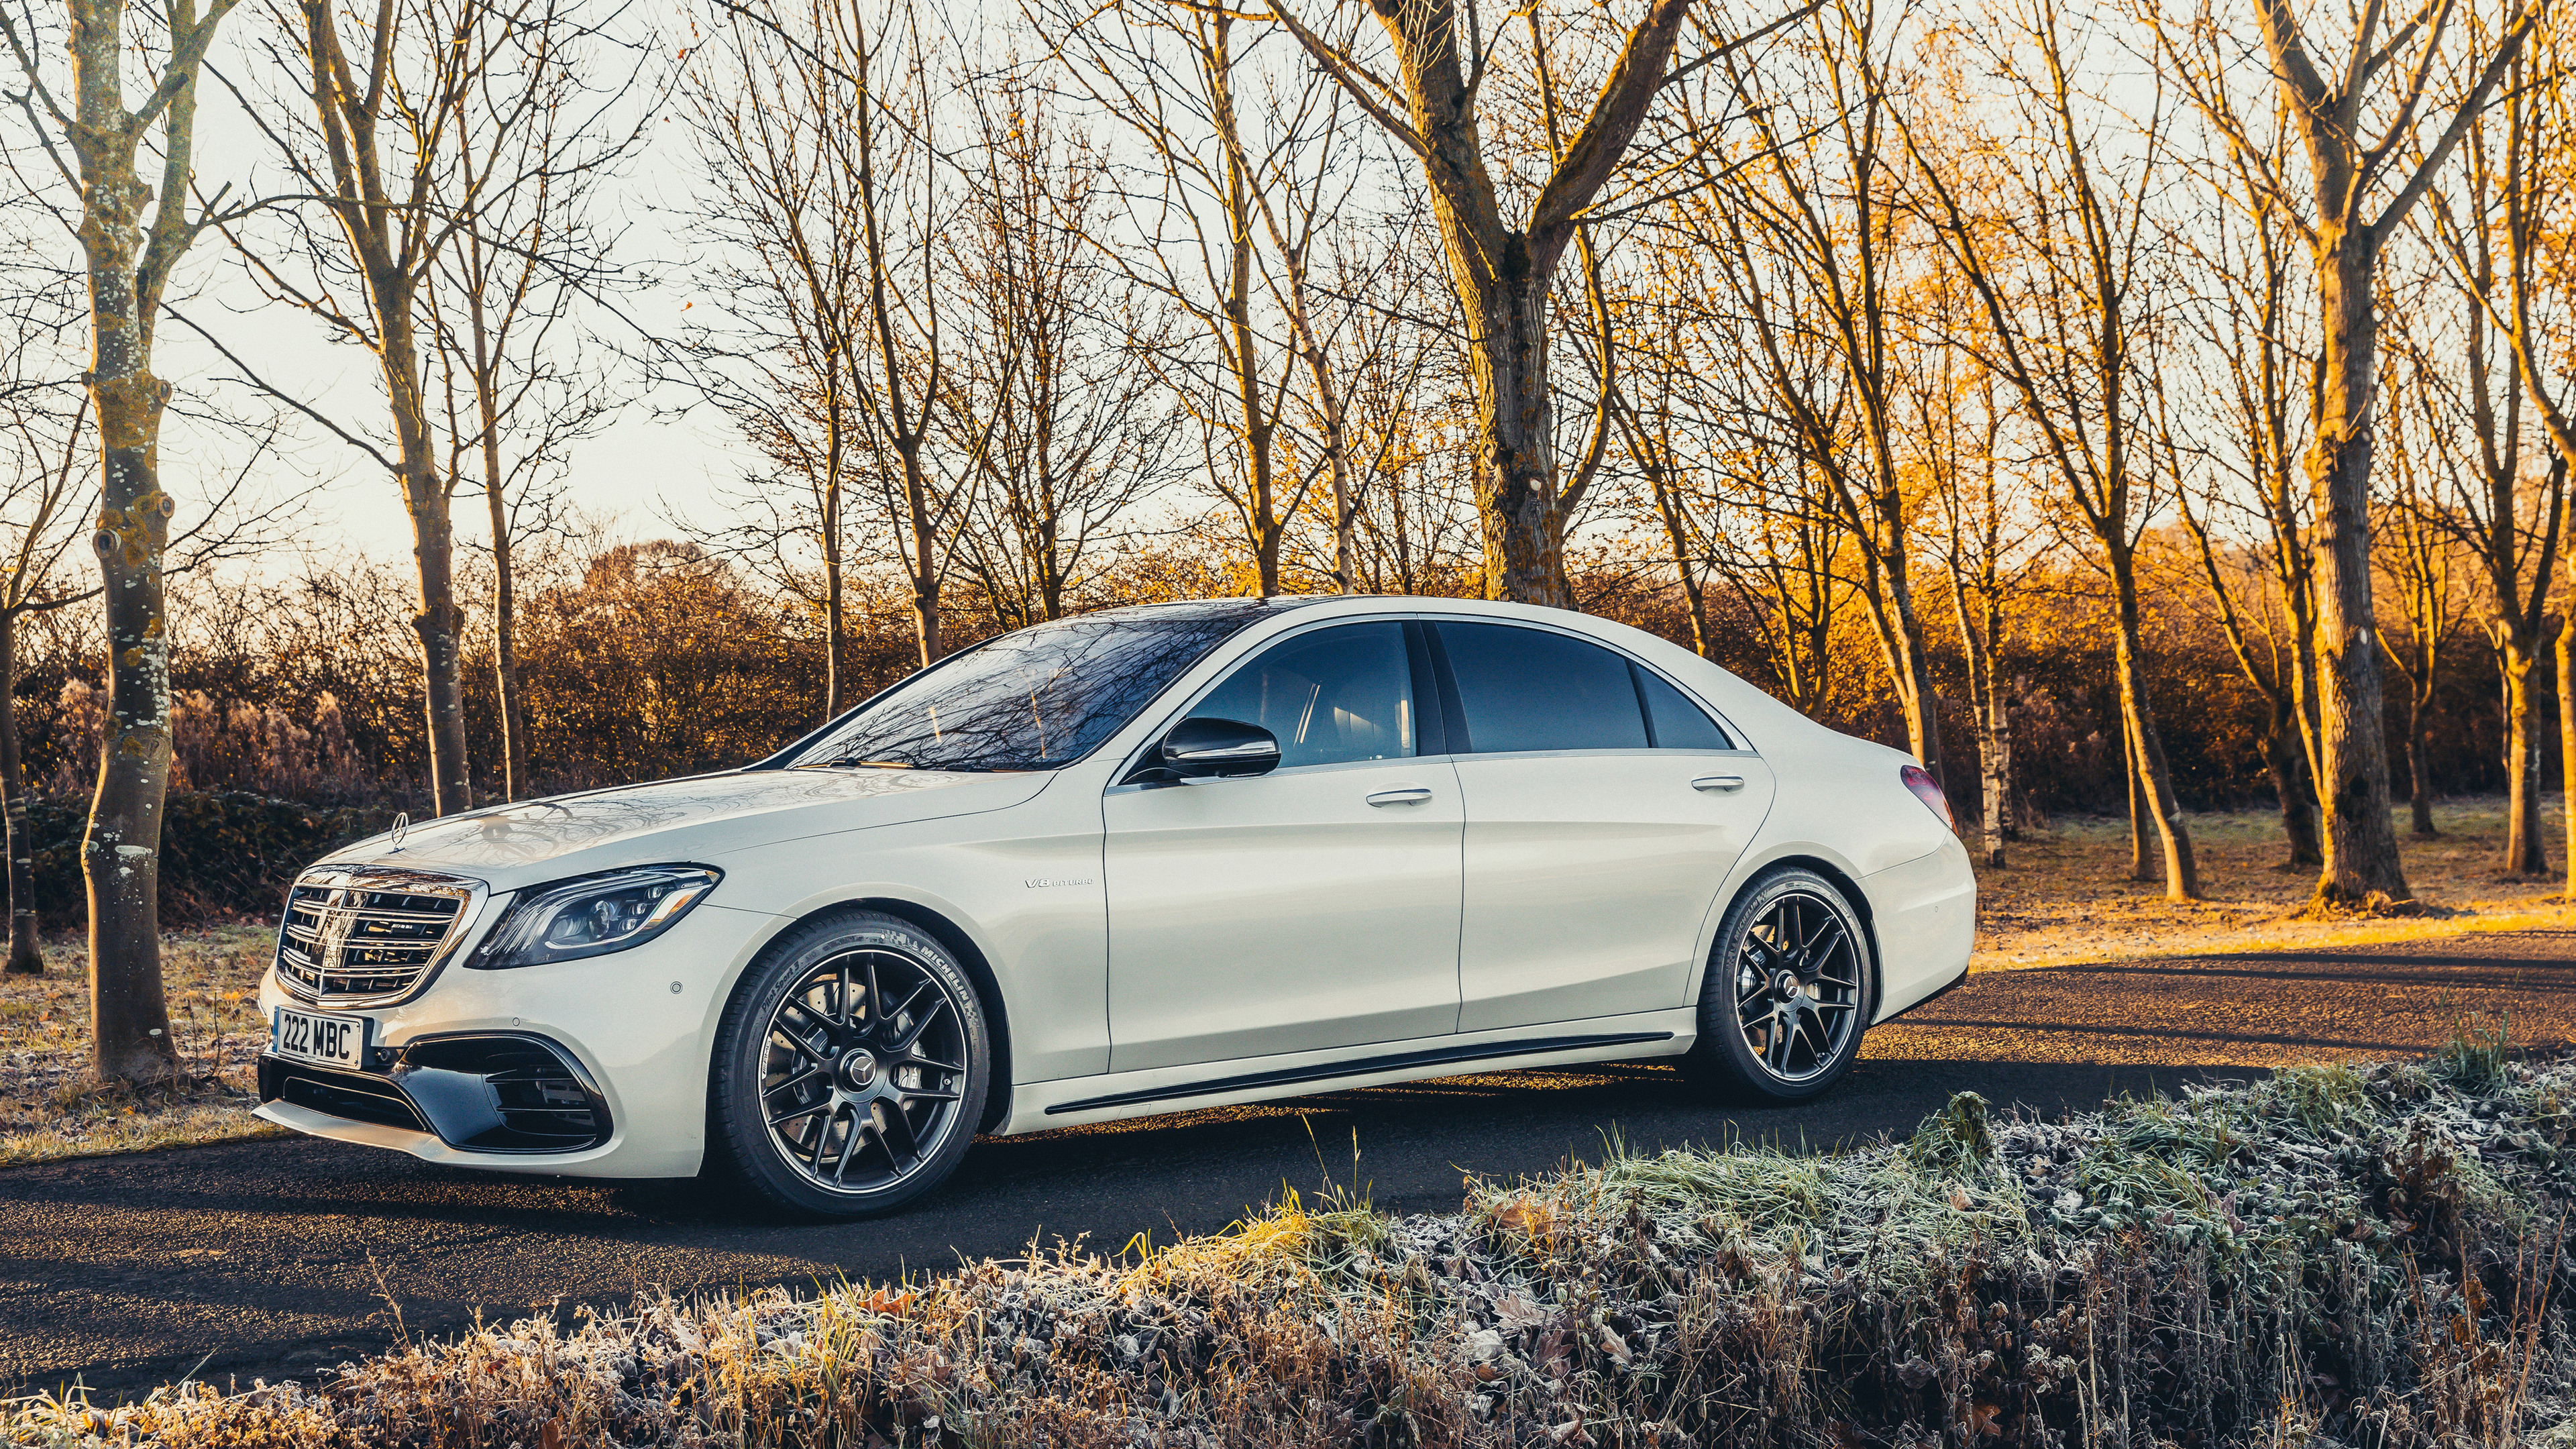 mercedes amg s63 1539108162 - Mercedes AMG S63 - mercedes wallpapers, mercedes s class wallpapers, mercedes benz wallpapers, hd-wallpapers, cars wallpapers, 4k-wallpapers, 2018 cars wallpapers